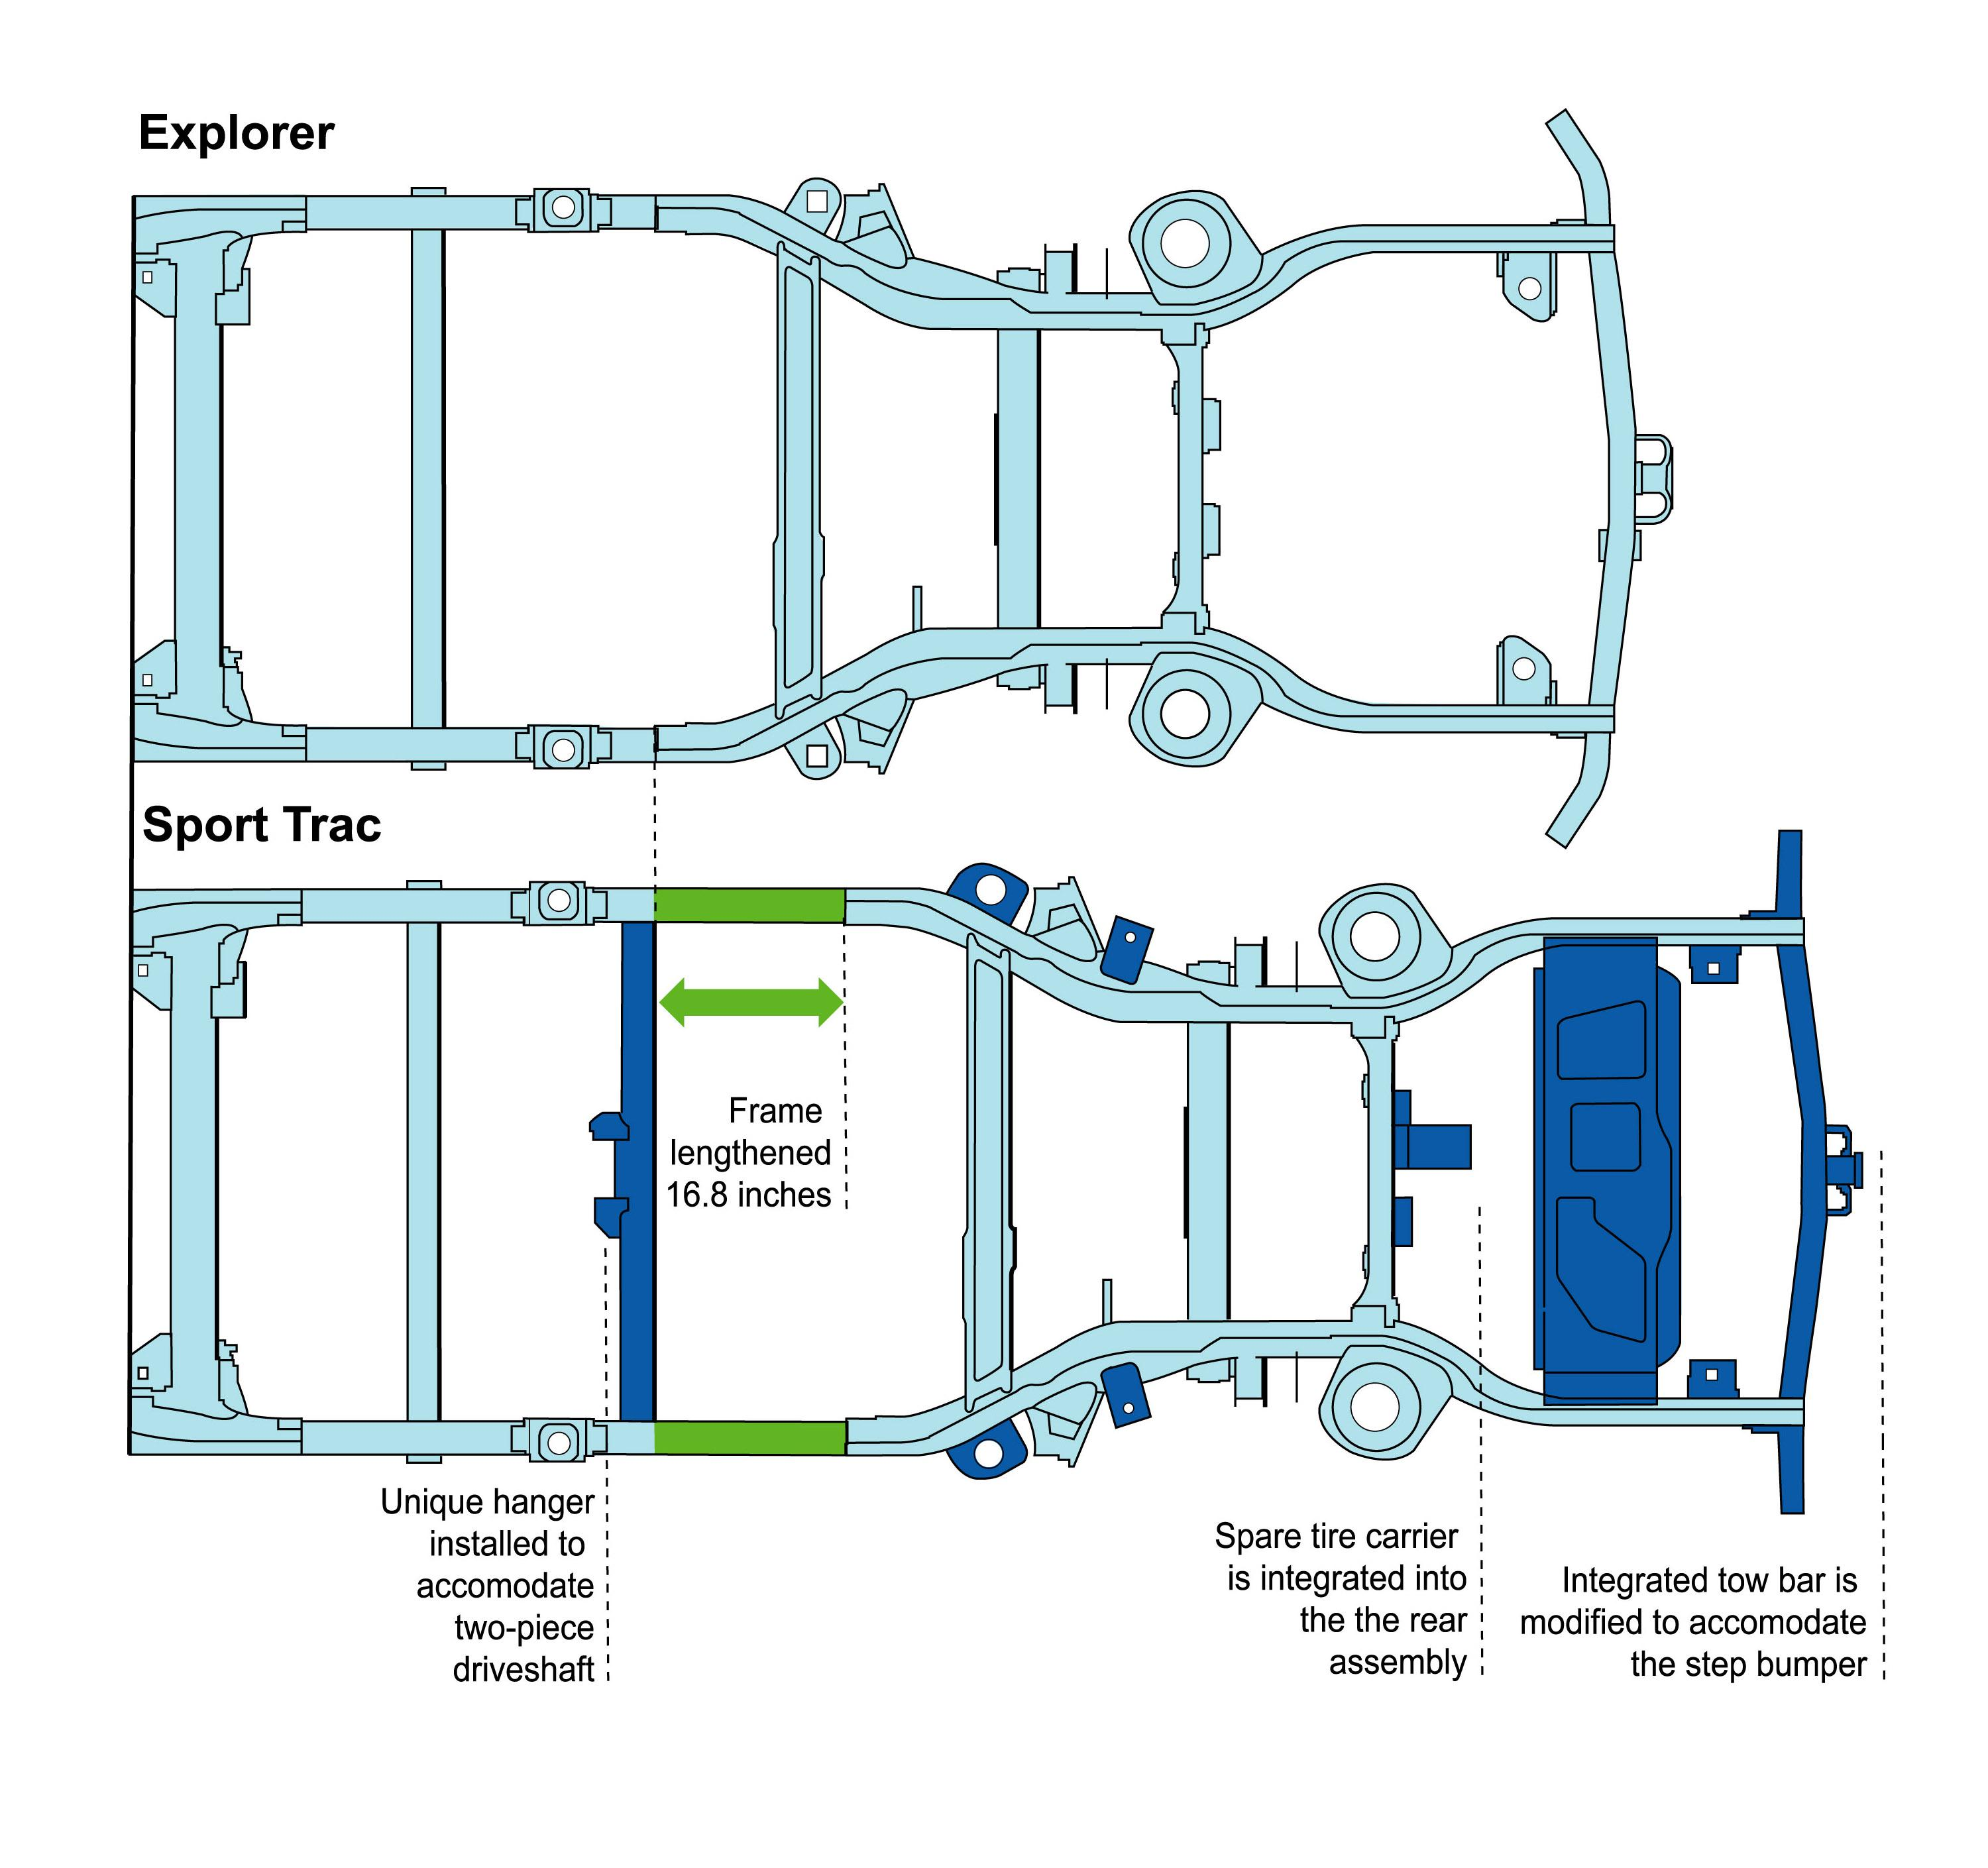 2007 Ford Explorer Sport Trac Top Speed Belt Wiring Diagram Besides Honda Ridgeline Towing Boat As Well